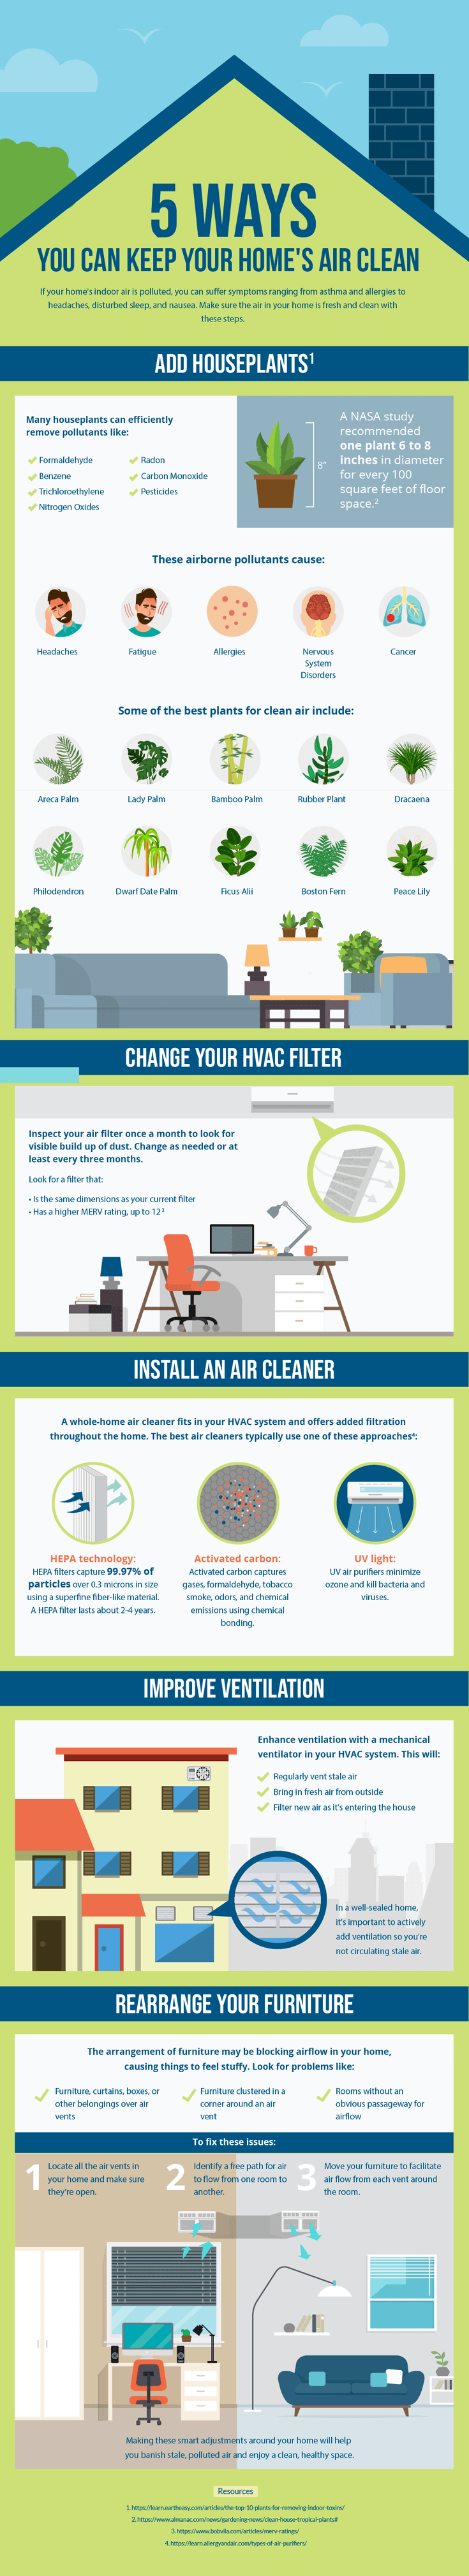 infographic for cleaning indoor air